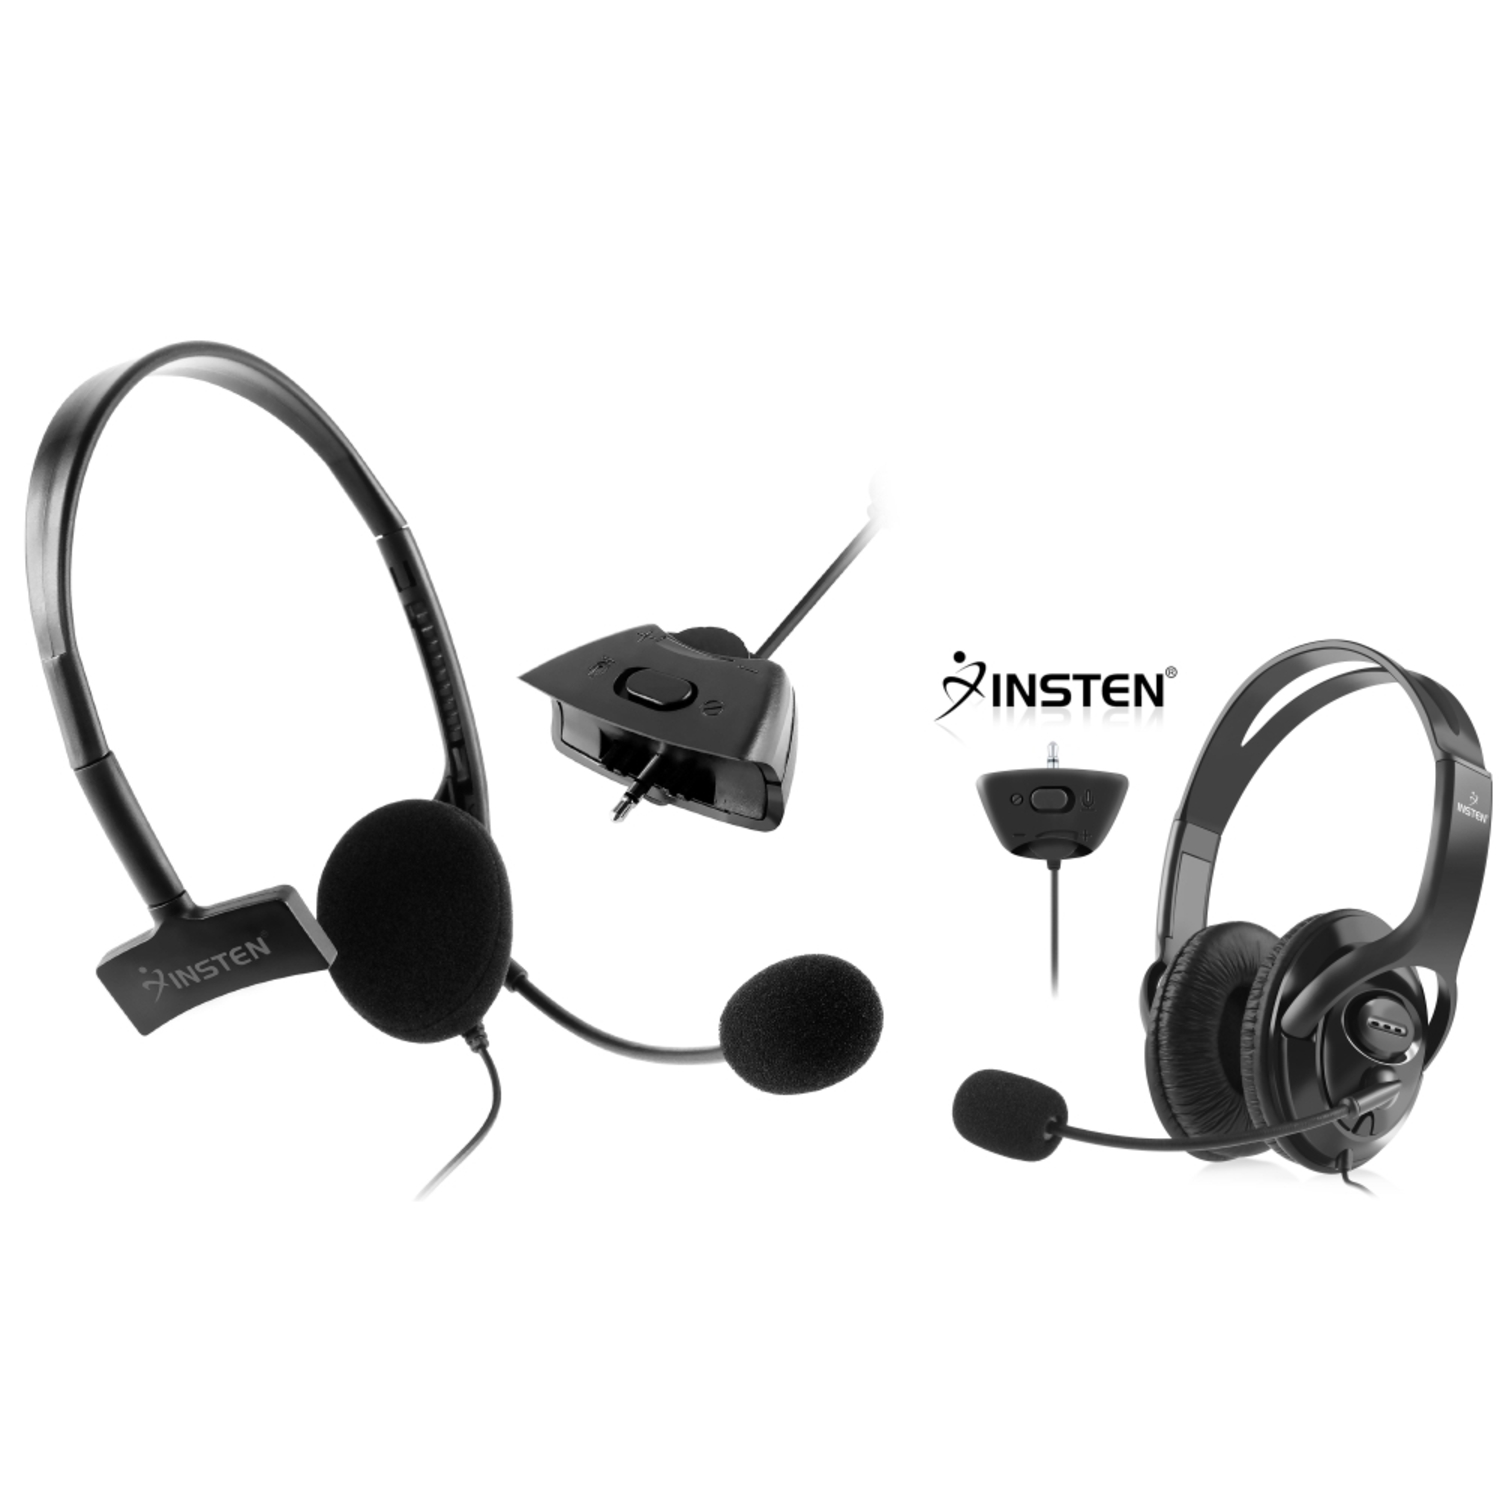 Insten 2-pack Live Gaming Headset Earphone with Microphone MIC for Microsoft Xbox 360 (Big + Small) - Black